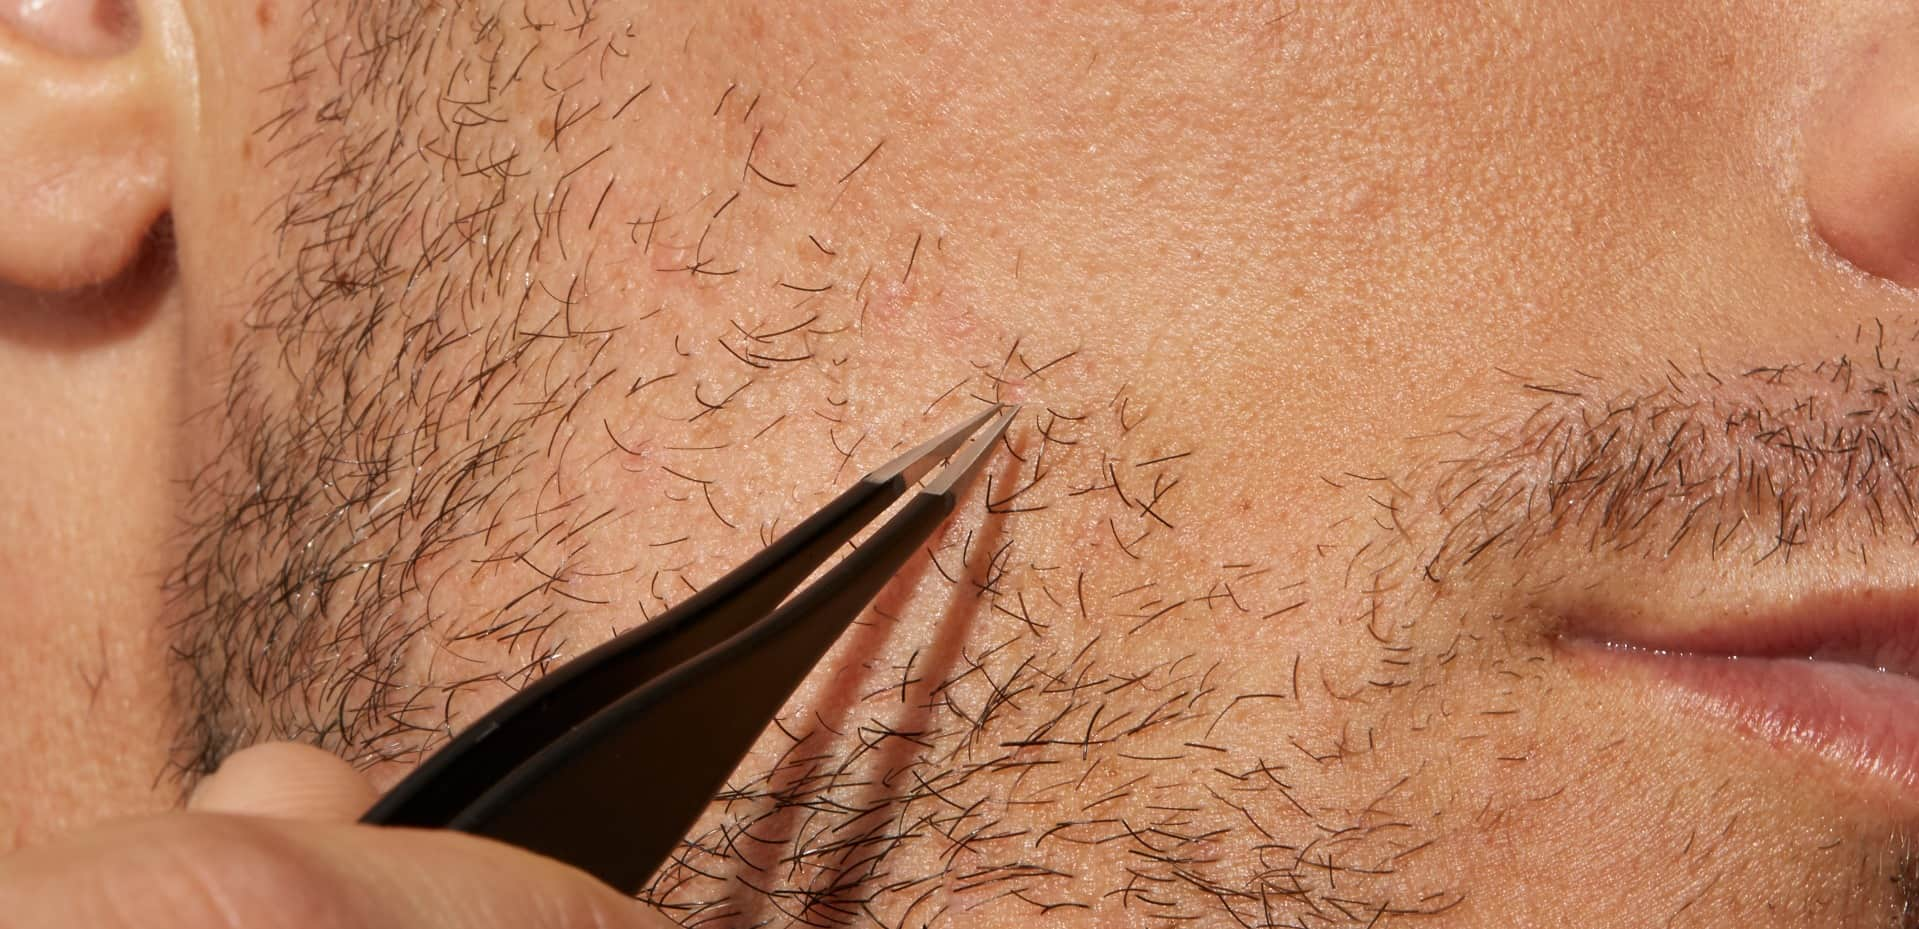 How To Get Rid Of Ingrown Hairs For Men